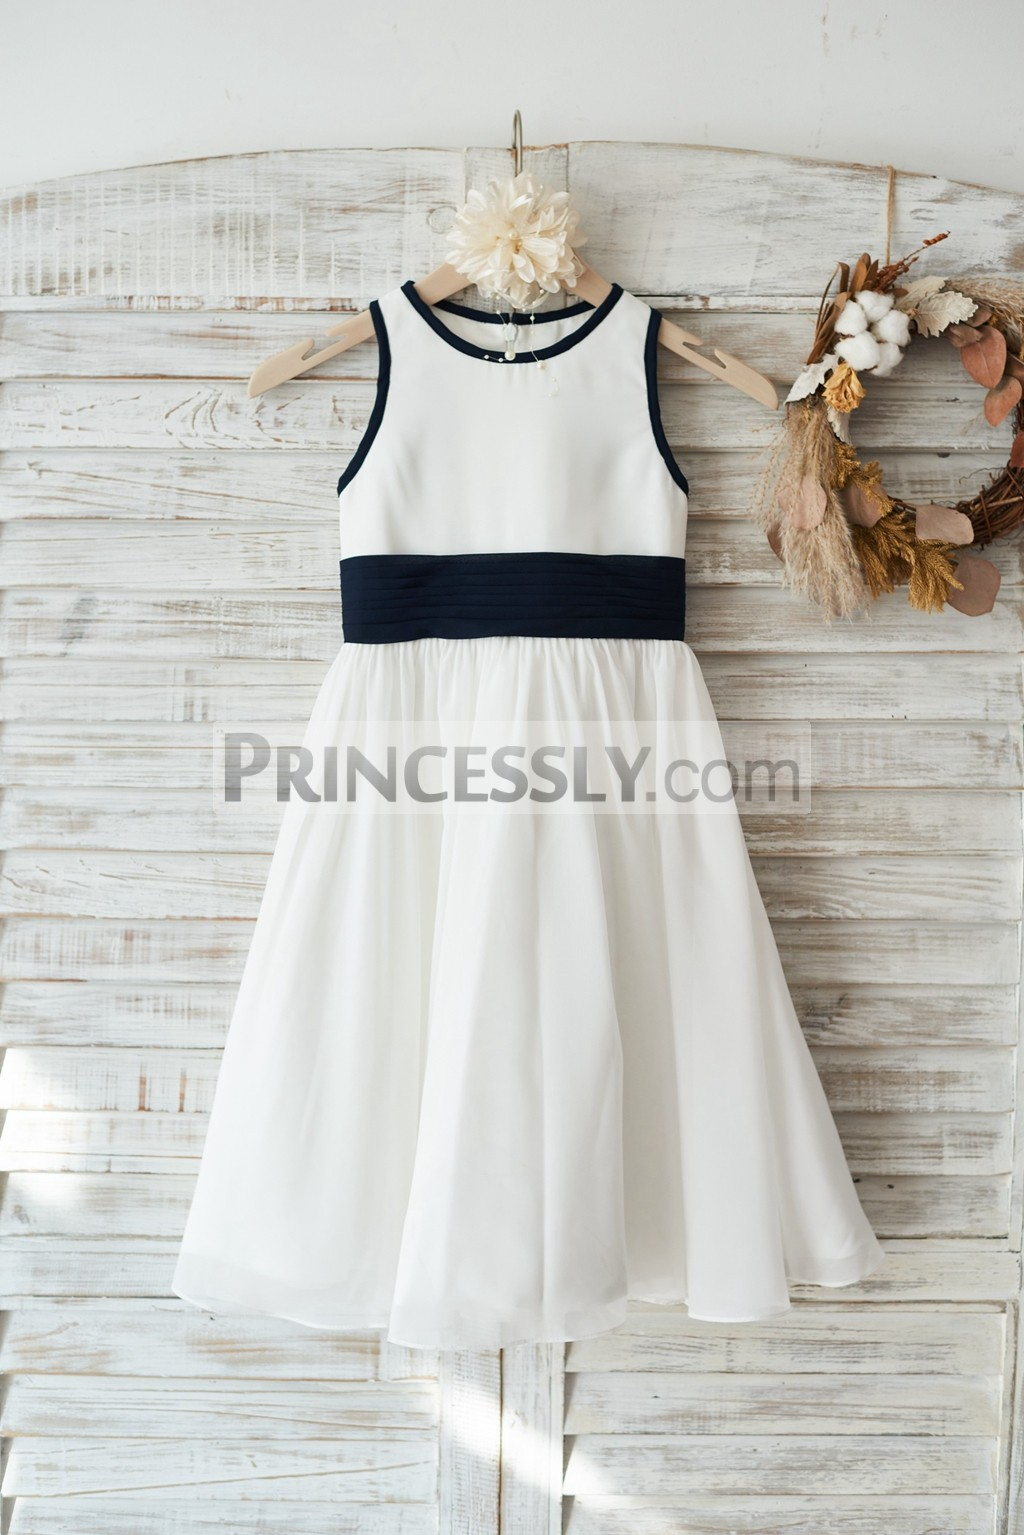 Ivory chiffon flower girl dress with navy blue edge and belt